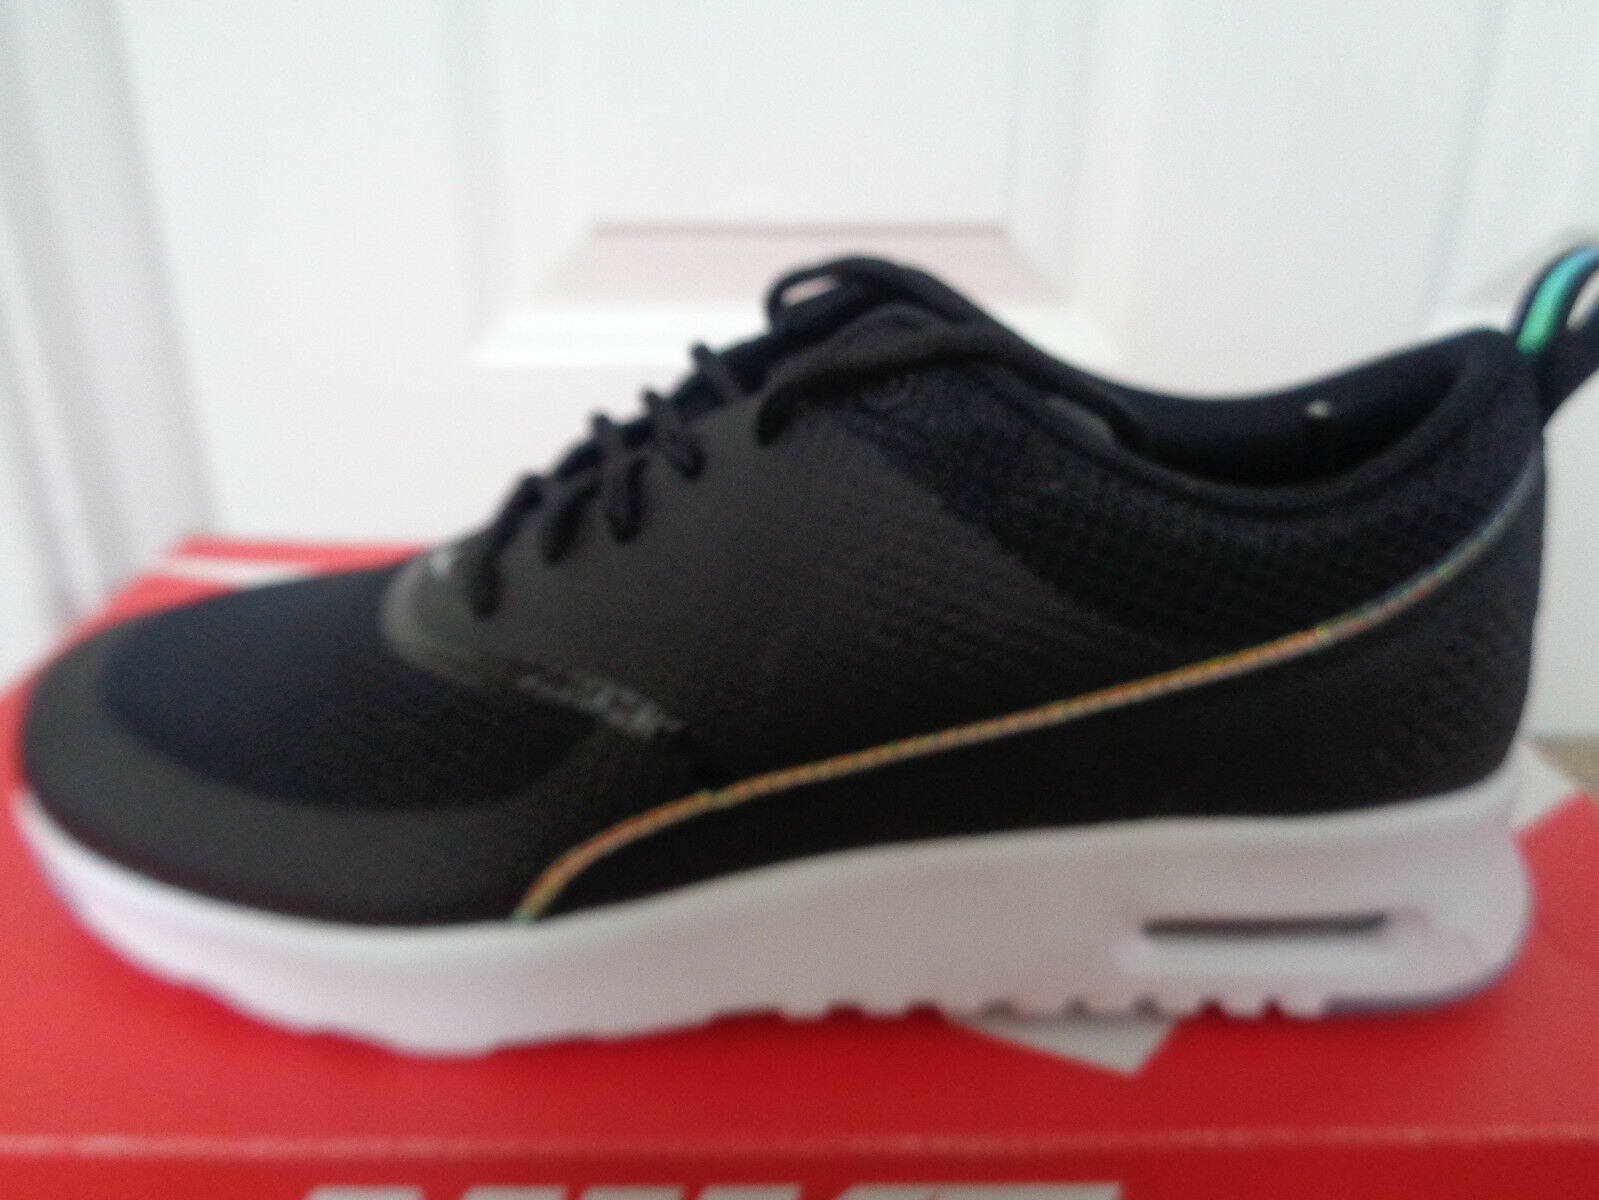 Nike Air trainers Max Thea PRM Damenss trainers Air 616723 014 uk 4 eu 37.5 us 6.5 new in box 81df18